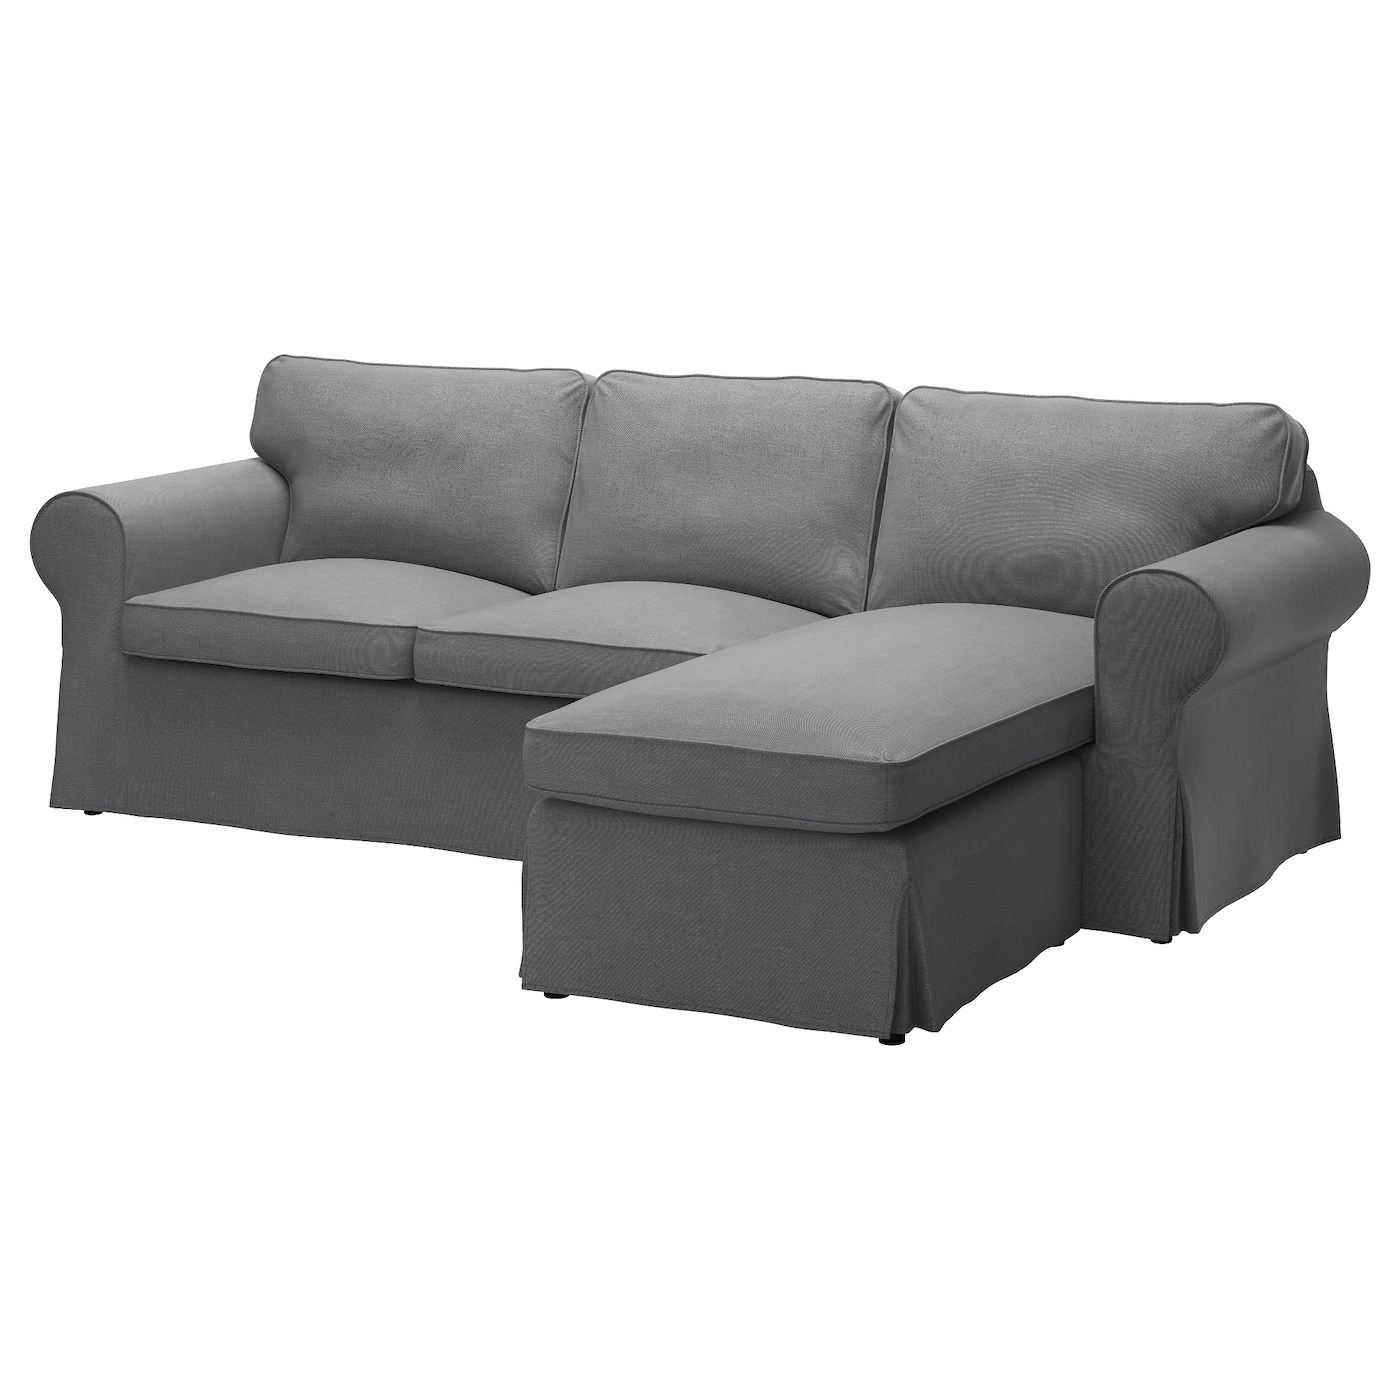 Ektorp Sofa From Ikea Ektorp Cover For 3 Seat Sofa With Chaise Longue Nordvalla Dark Grey